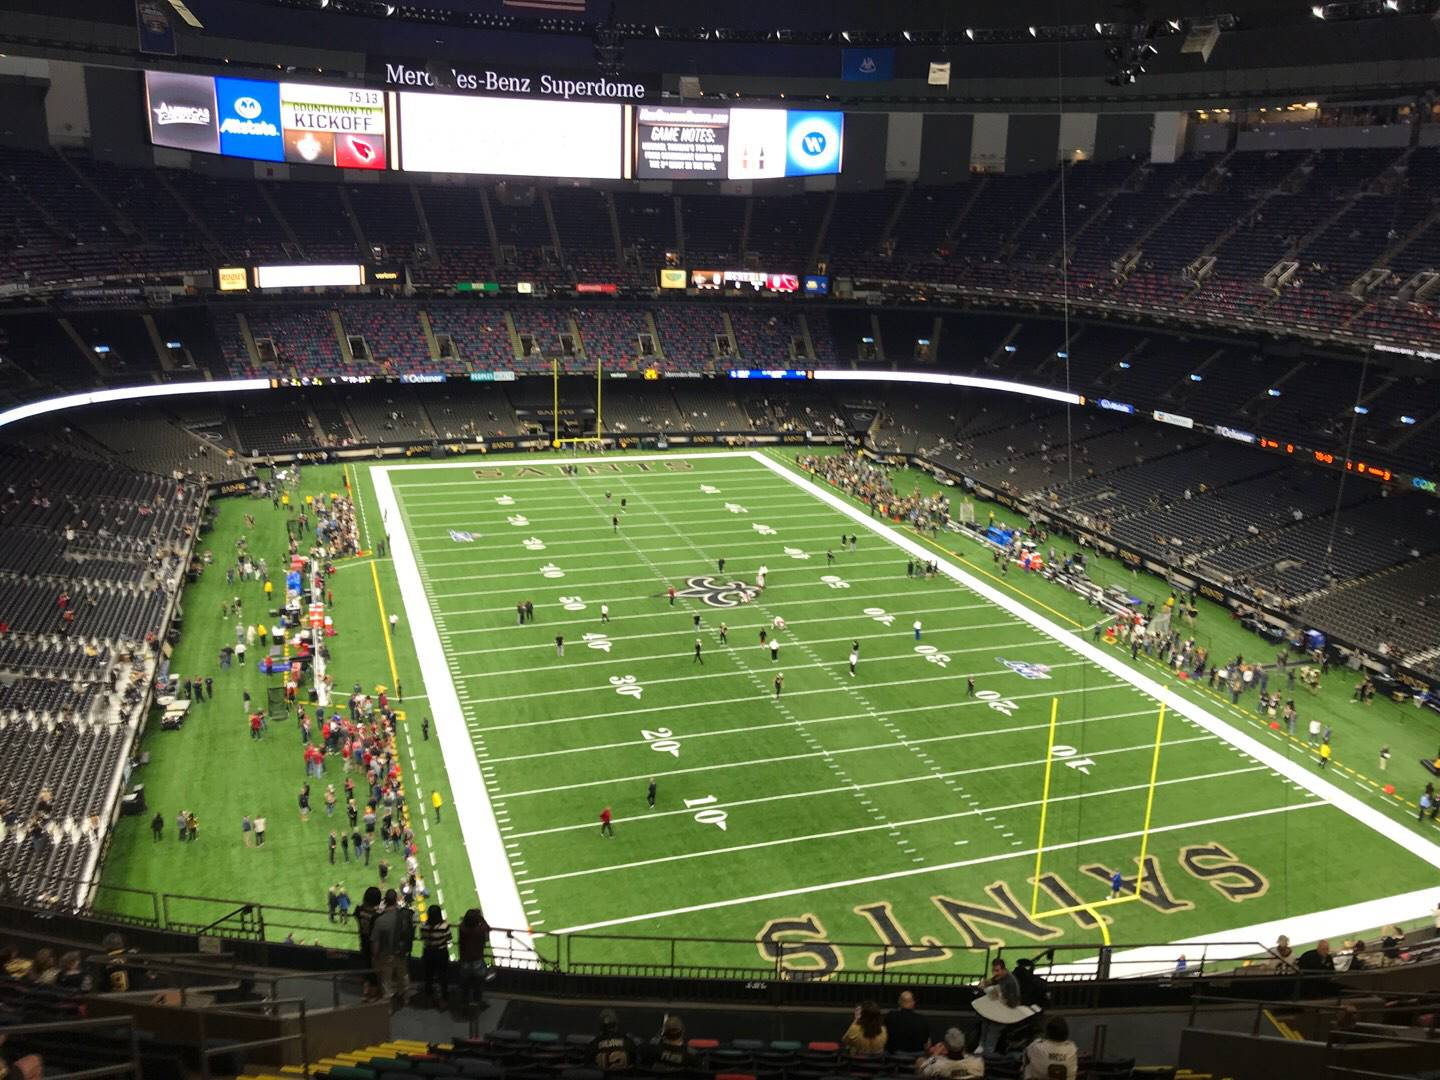 Caesars Superdome Section 604 Row 19 Seat 14